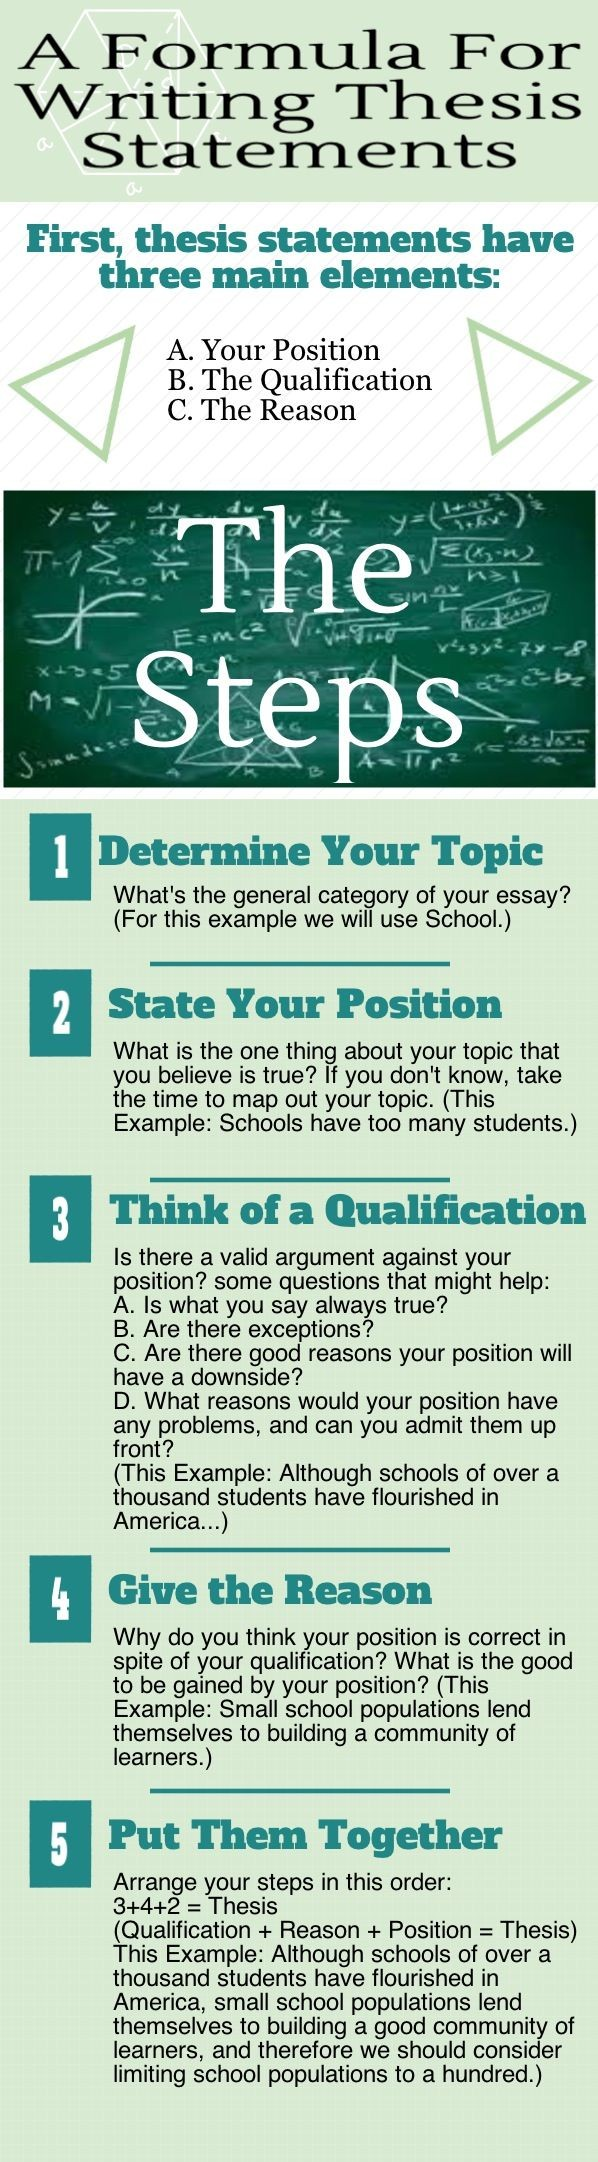 How to write a thesis statement for a literary research paper